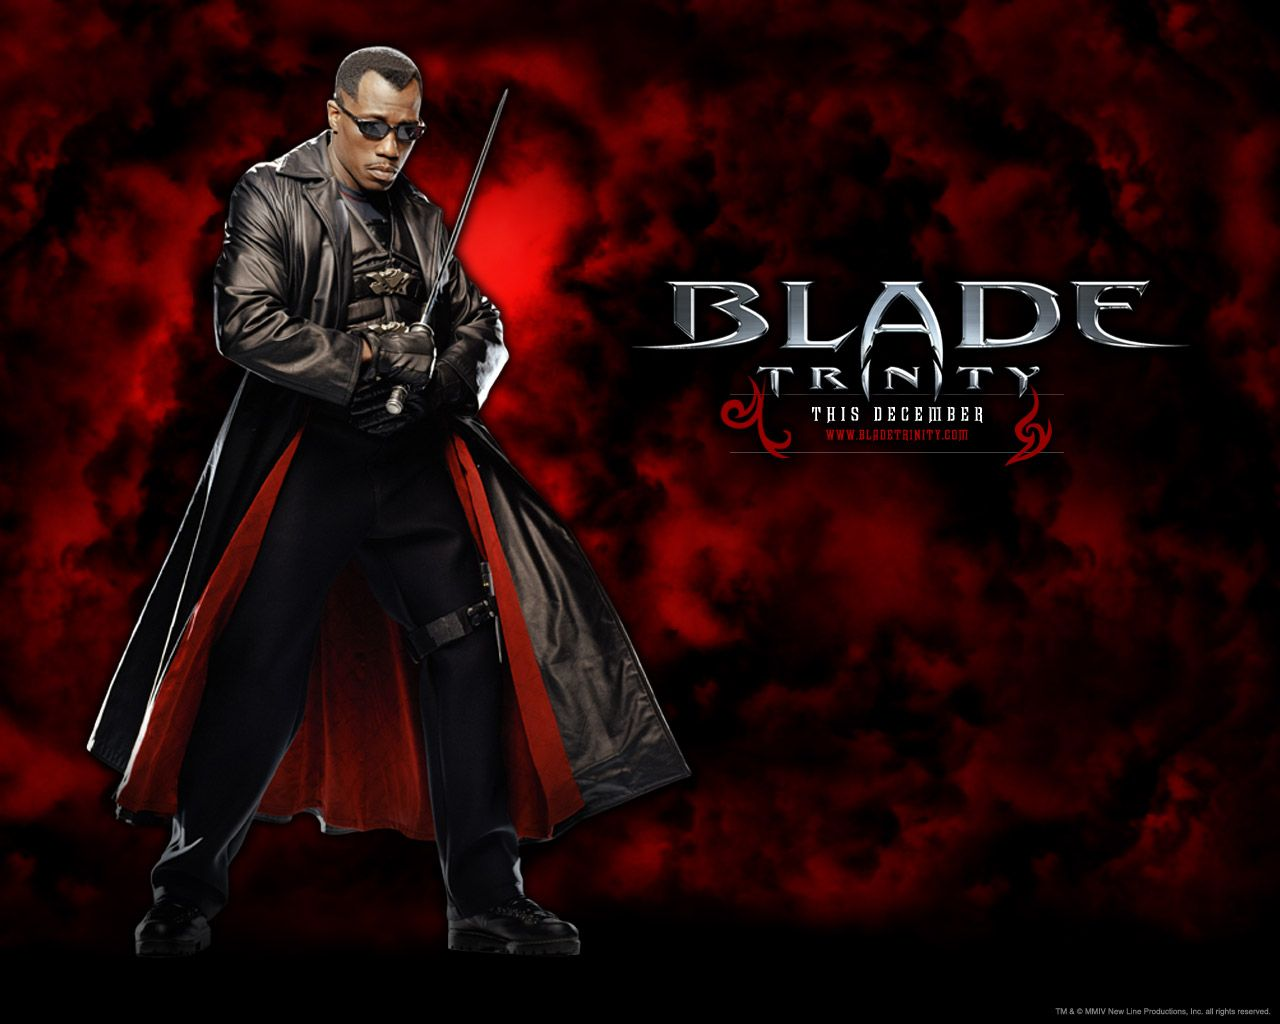 Wesley Snipes Returns As The Day Walking Vampire Hunter In The Explosive Third And Final Film In The Blade Franchise B Blade Movie Blade Film Movie Wallpapers